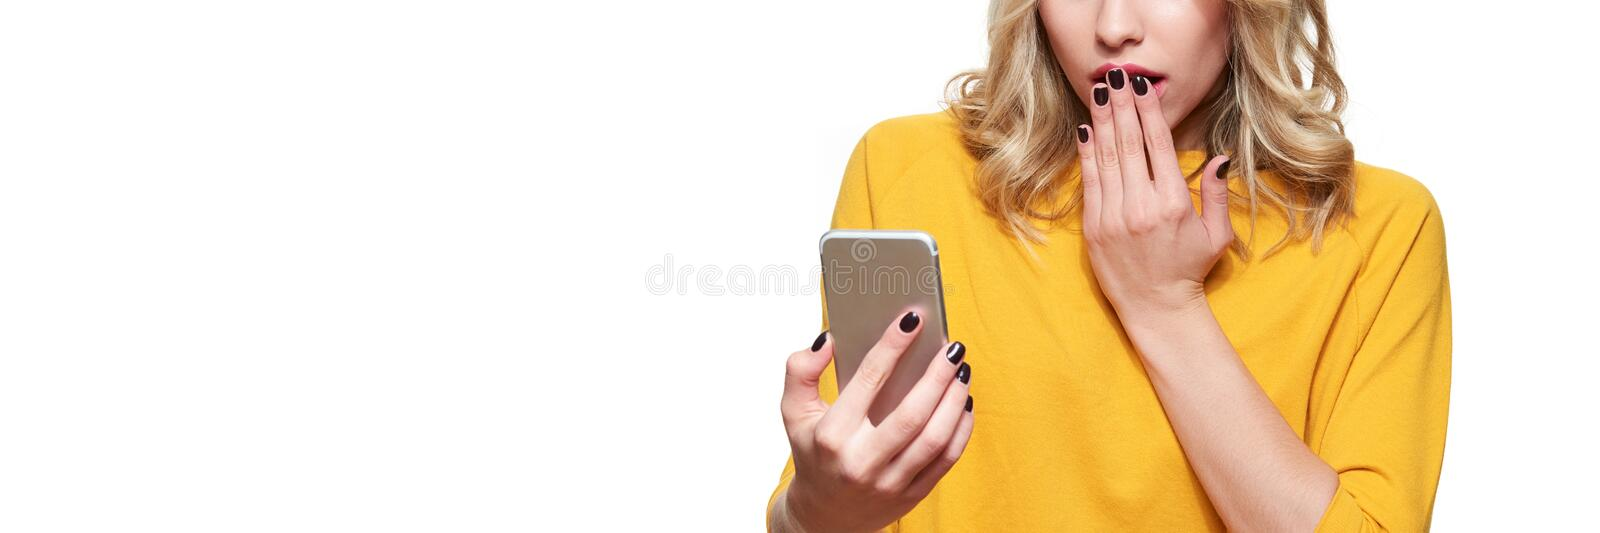 Shocked young woman holding up her mobile phone, reading shocking news. Woman in disbelief, isolated over white. stock photo